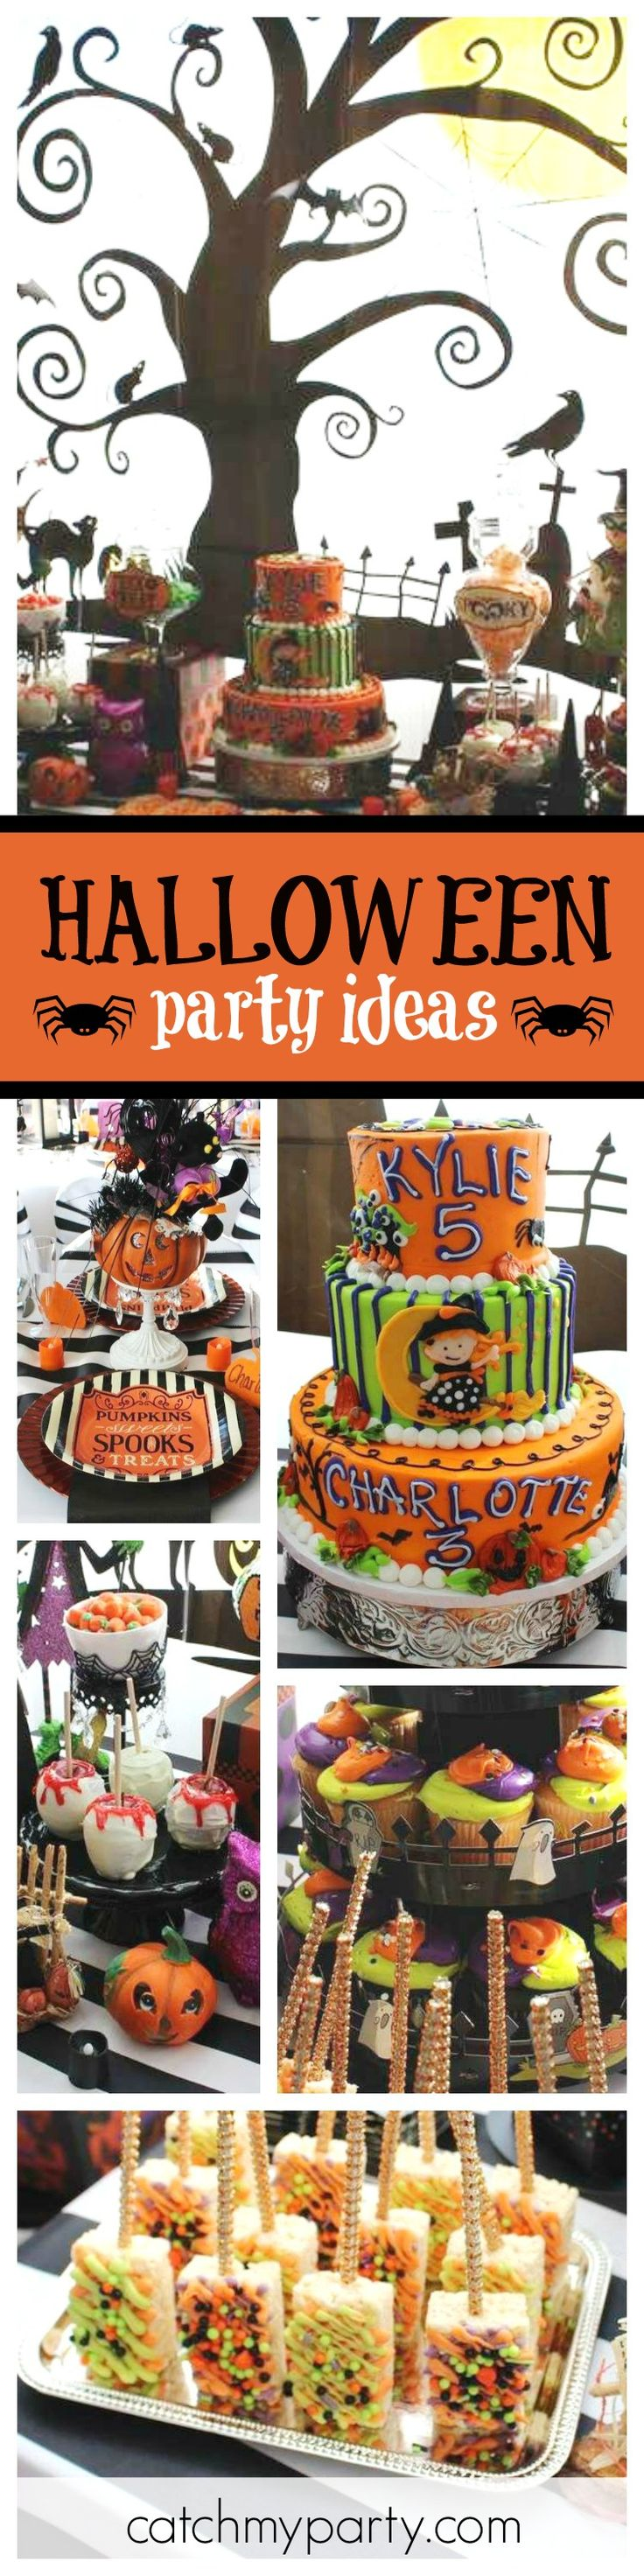 902 best images about halloween party ideas on pinterest for Easy kid friendly halloween treats